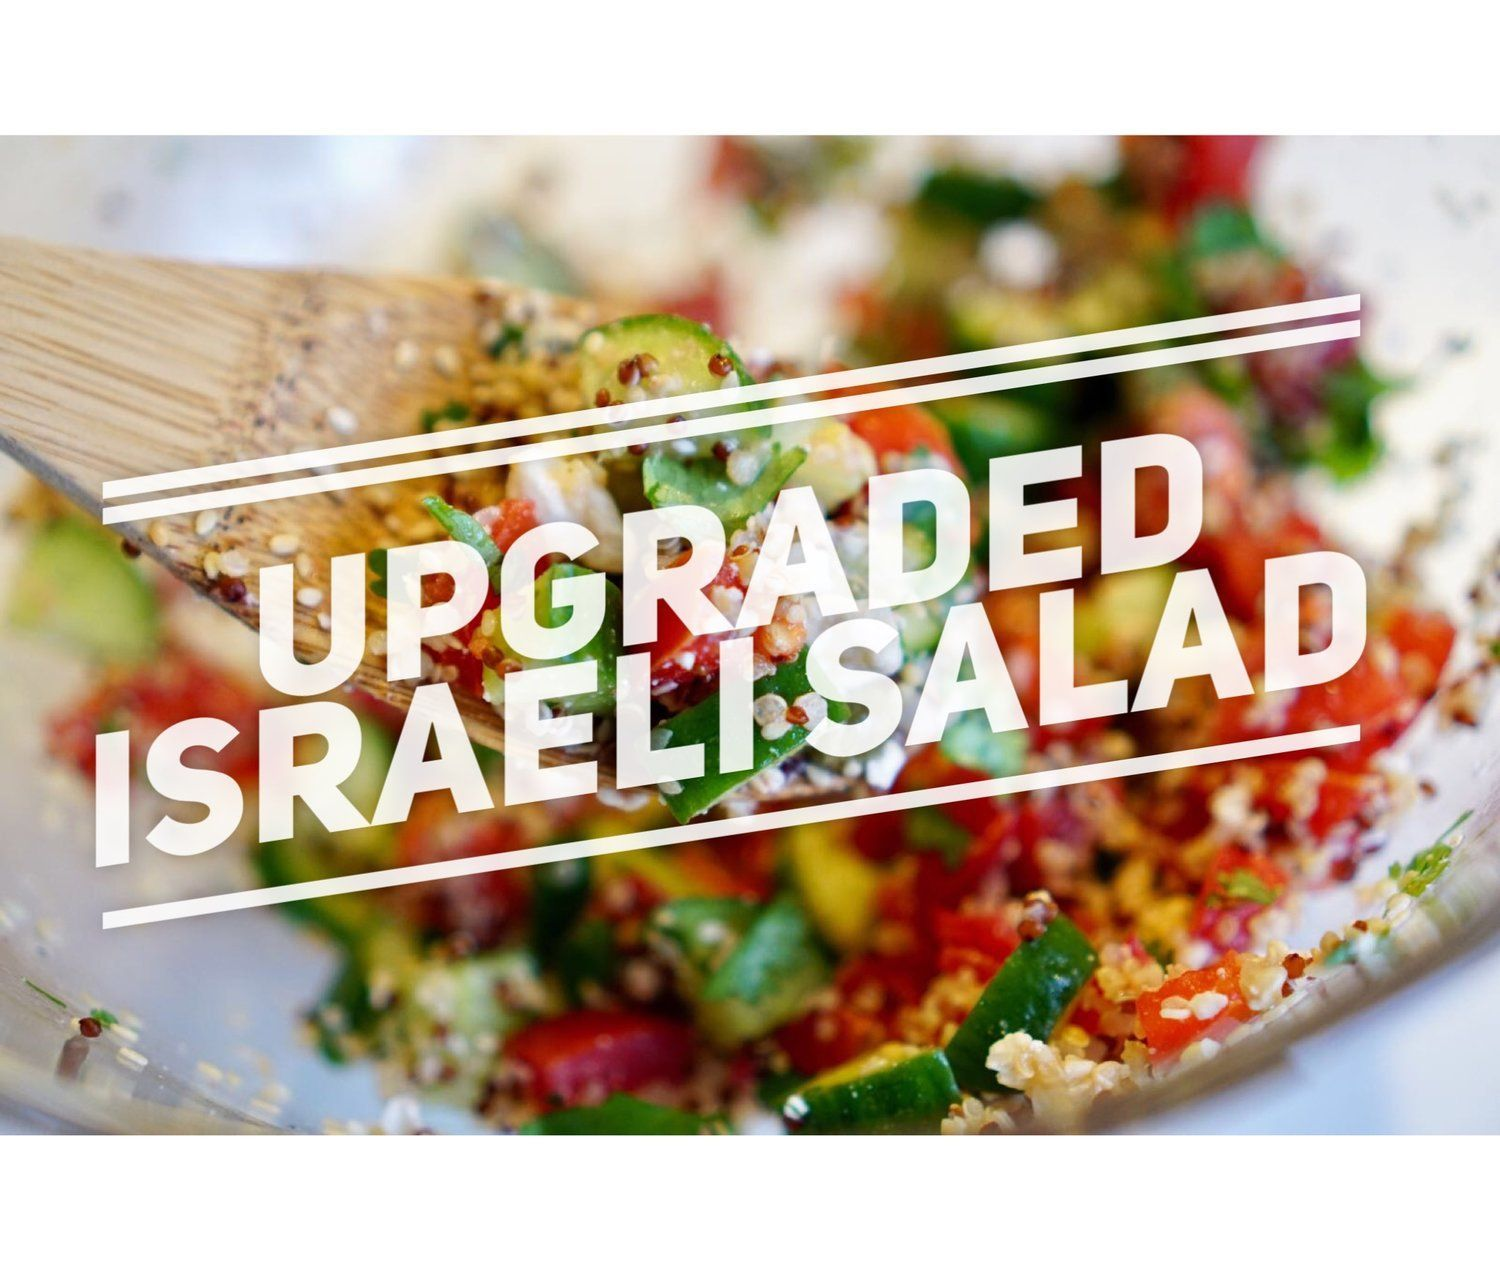 Israeli Salad #athletefood Athlete Food Israeli Salad #athletefood